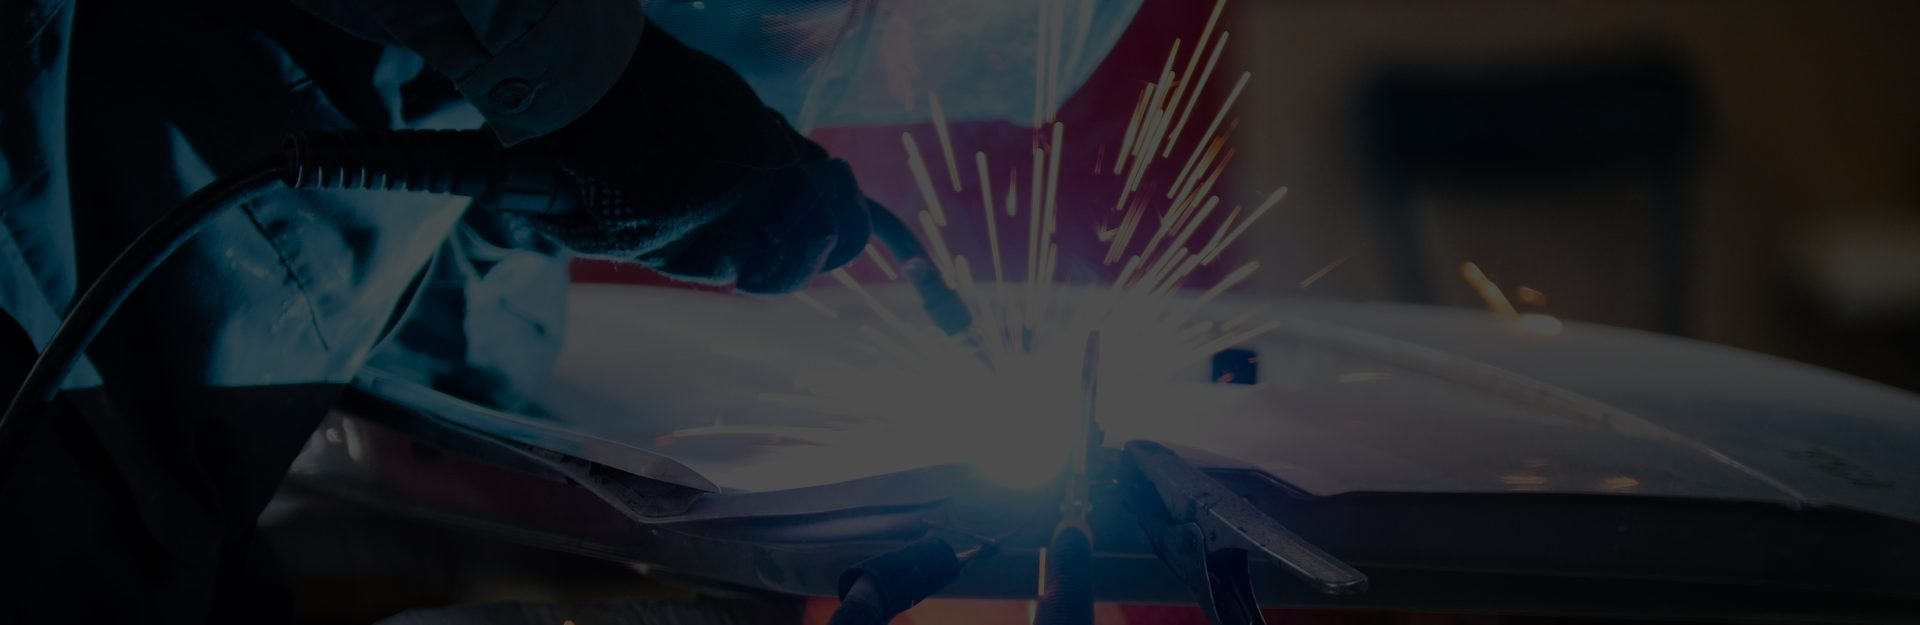 We Are Experienced Metal Fabricators